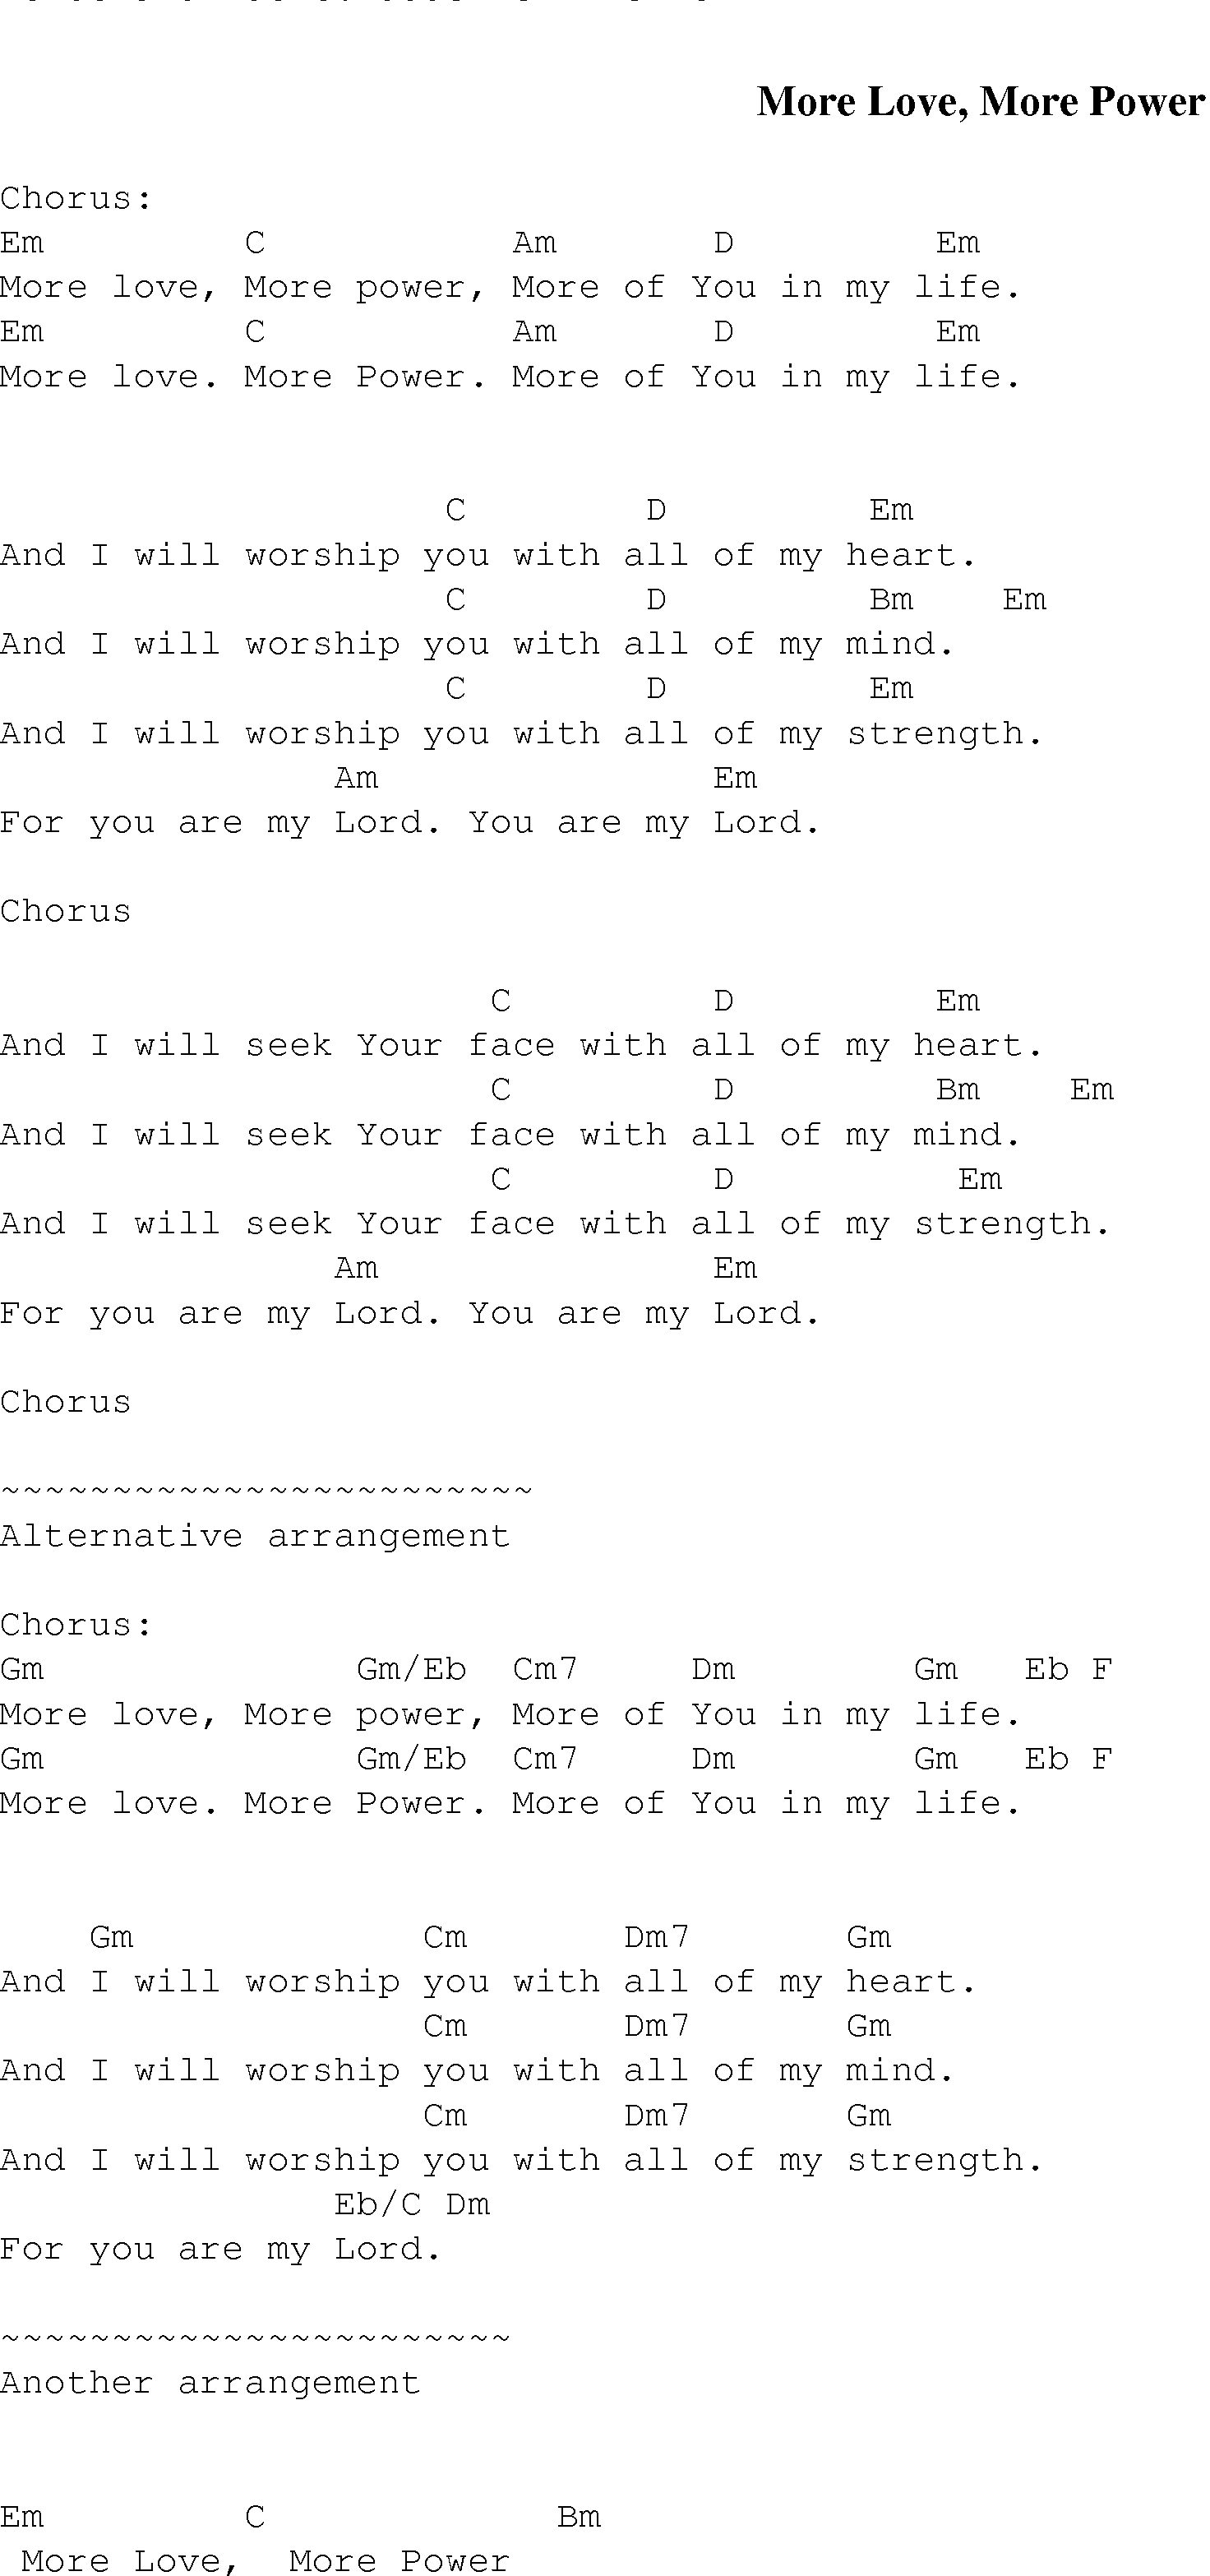 More love more power christian gospel song lyrics and chords gospel song morelovemorepower lyrics and chords hexwebz Choice Image